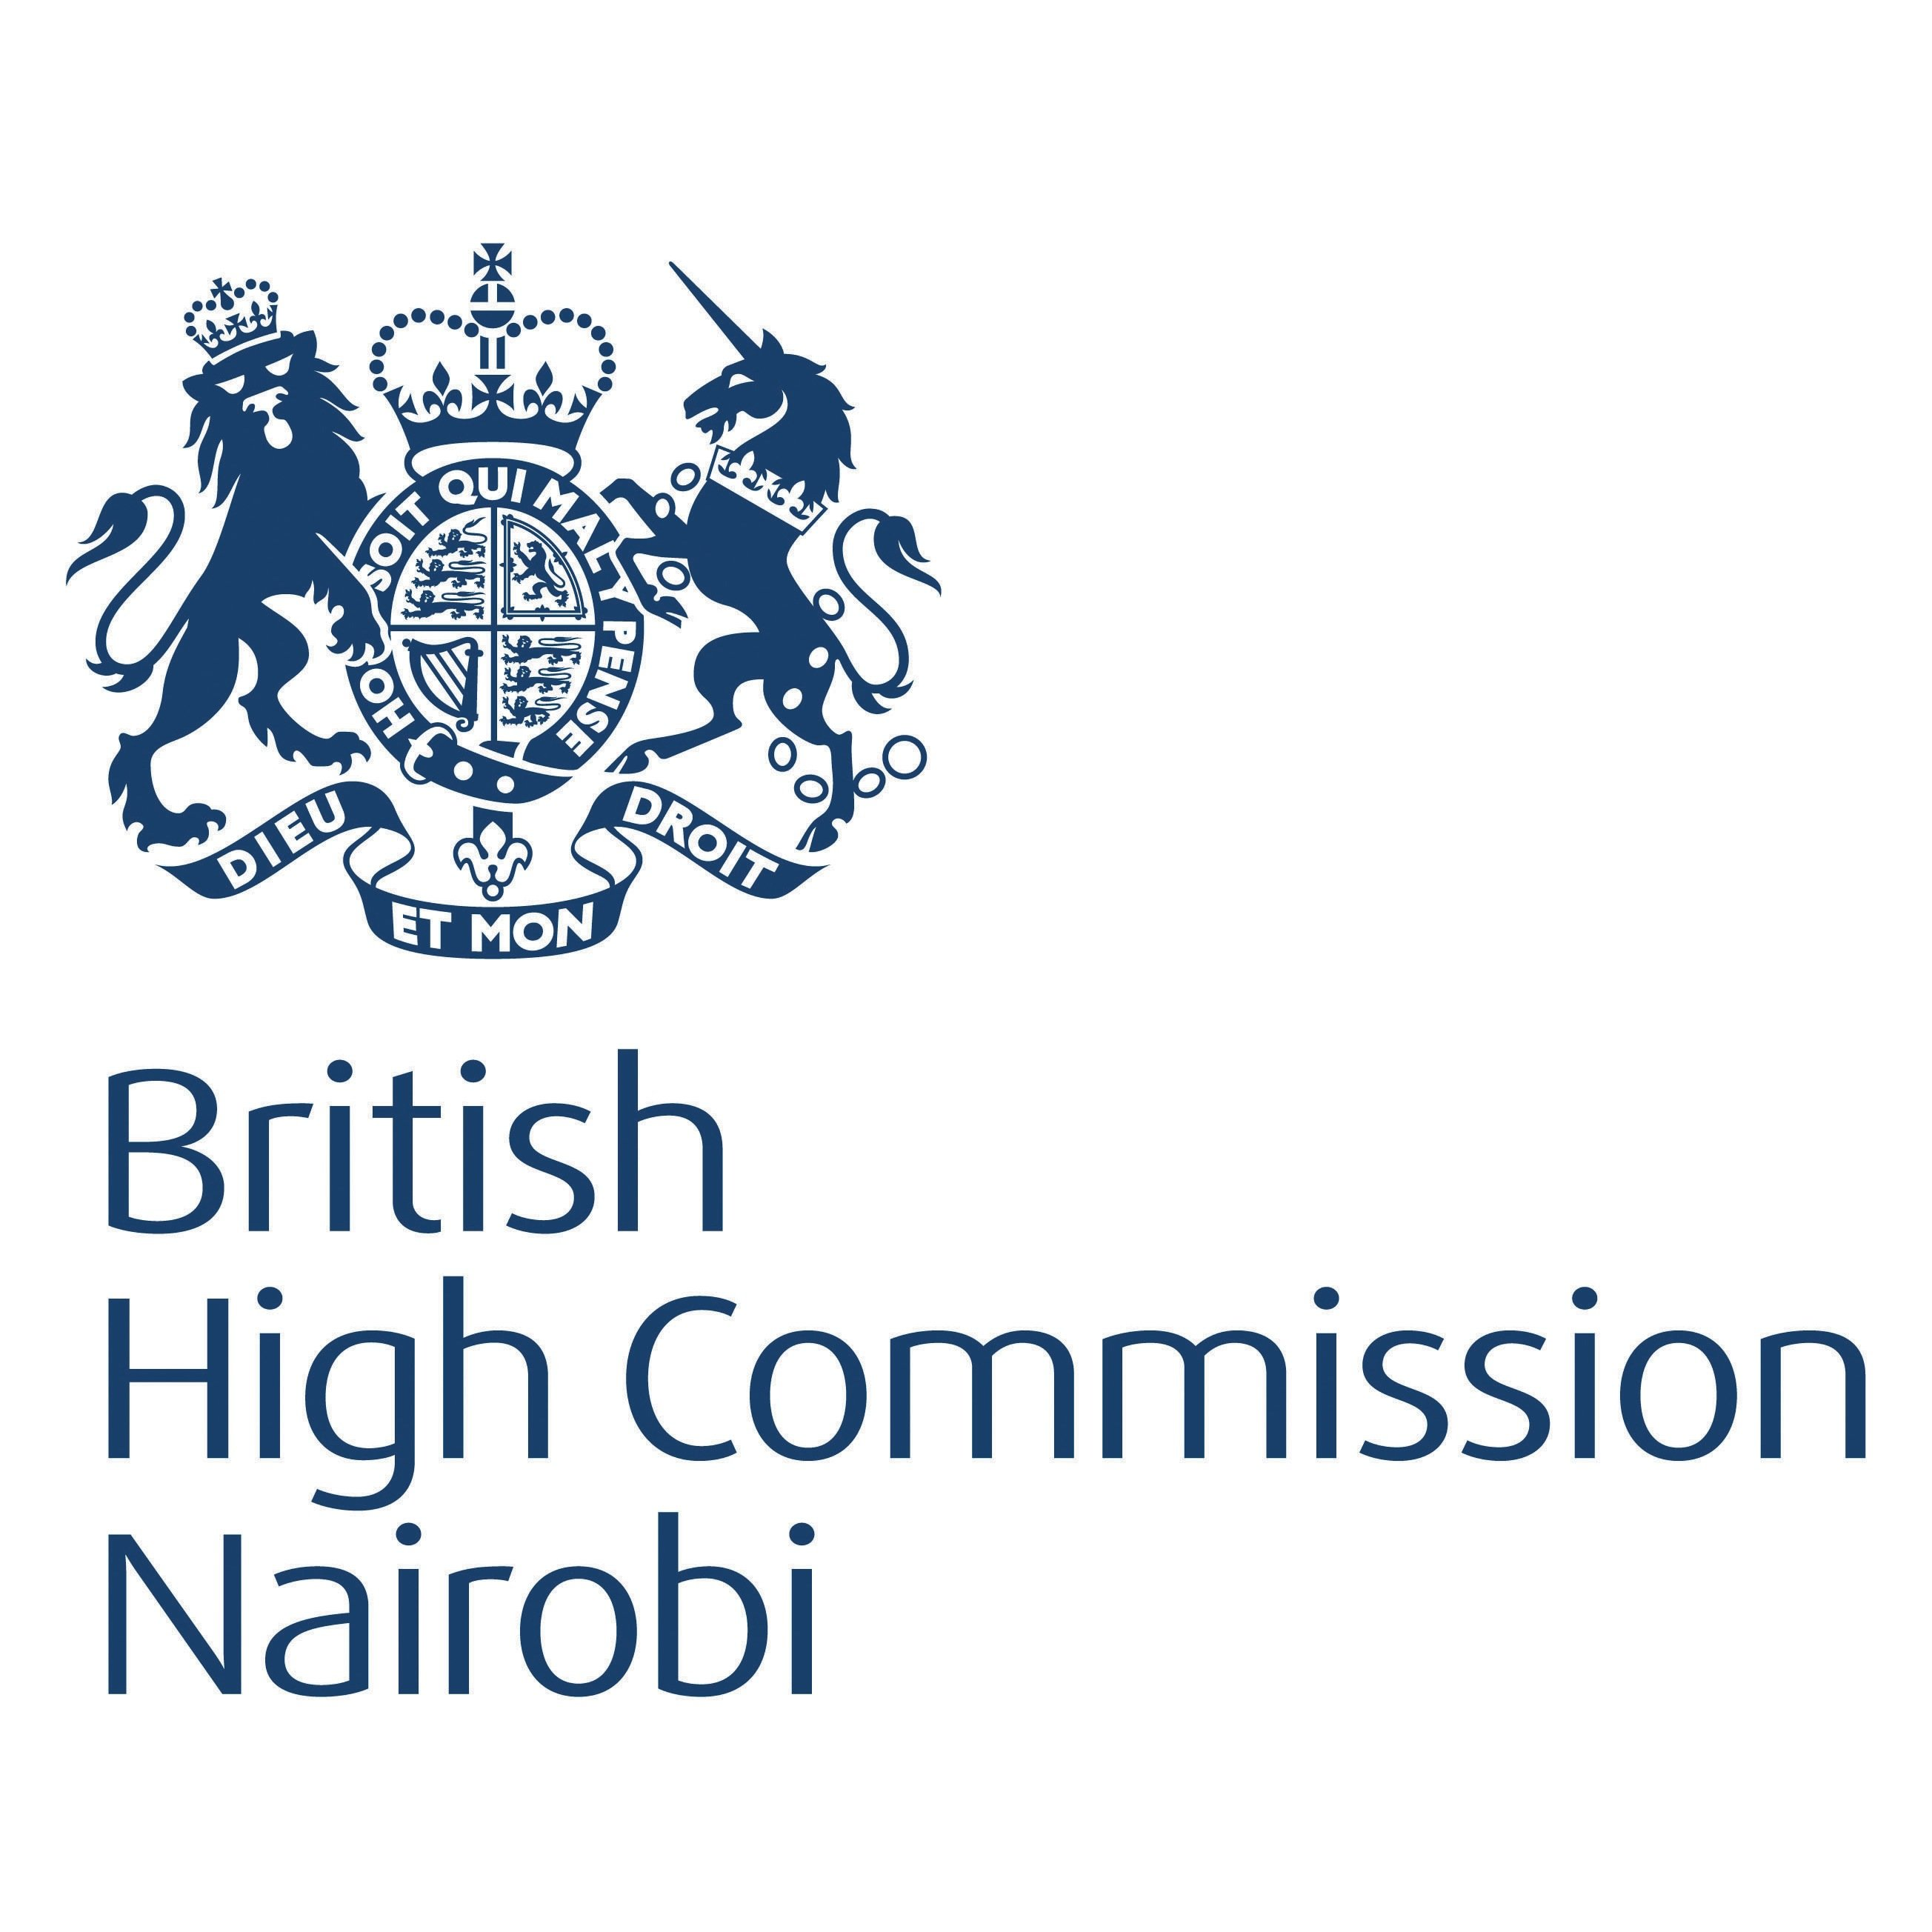 British High Commission Nairobi